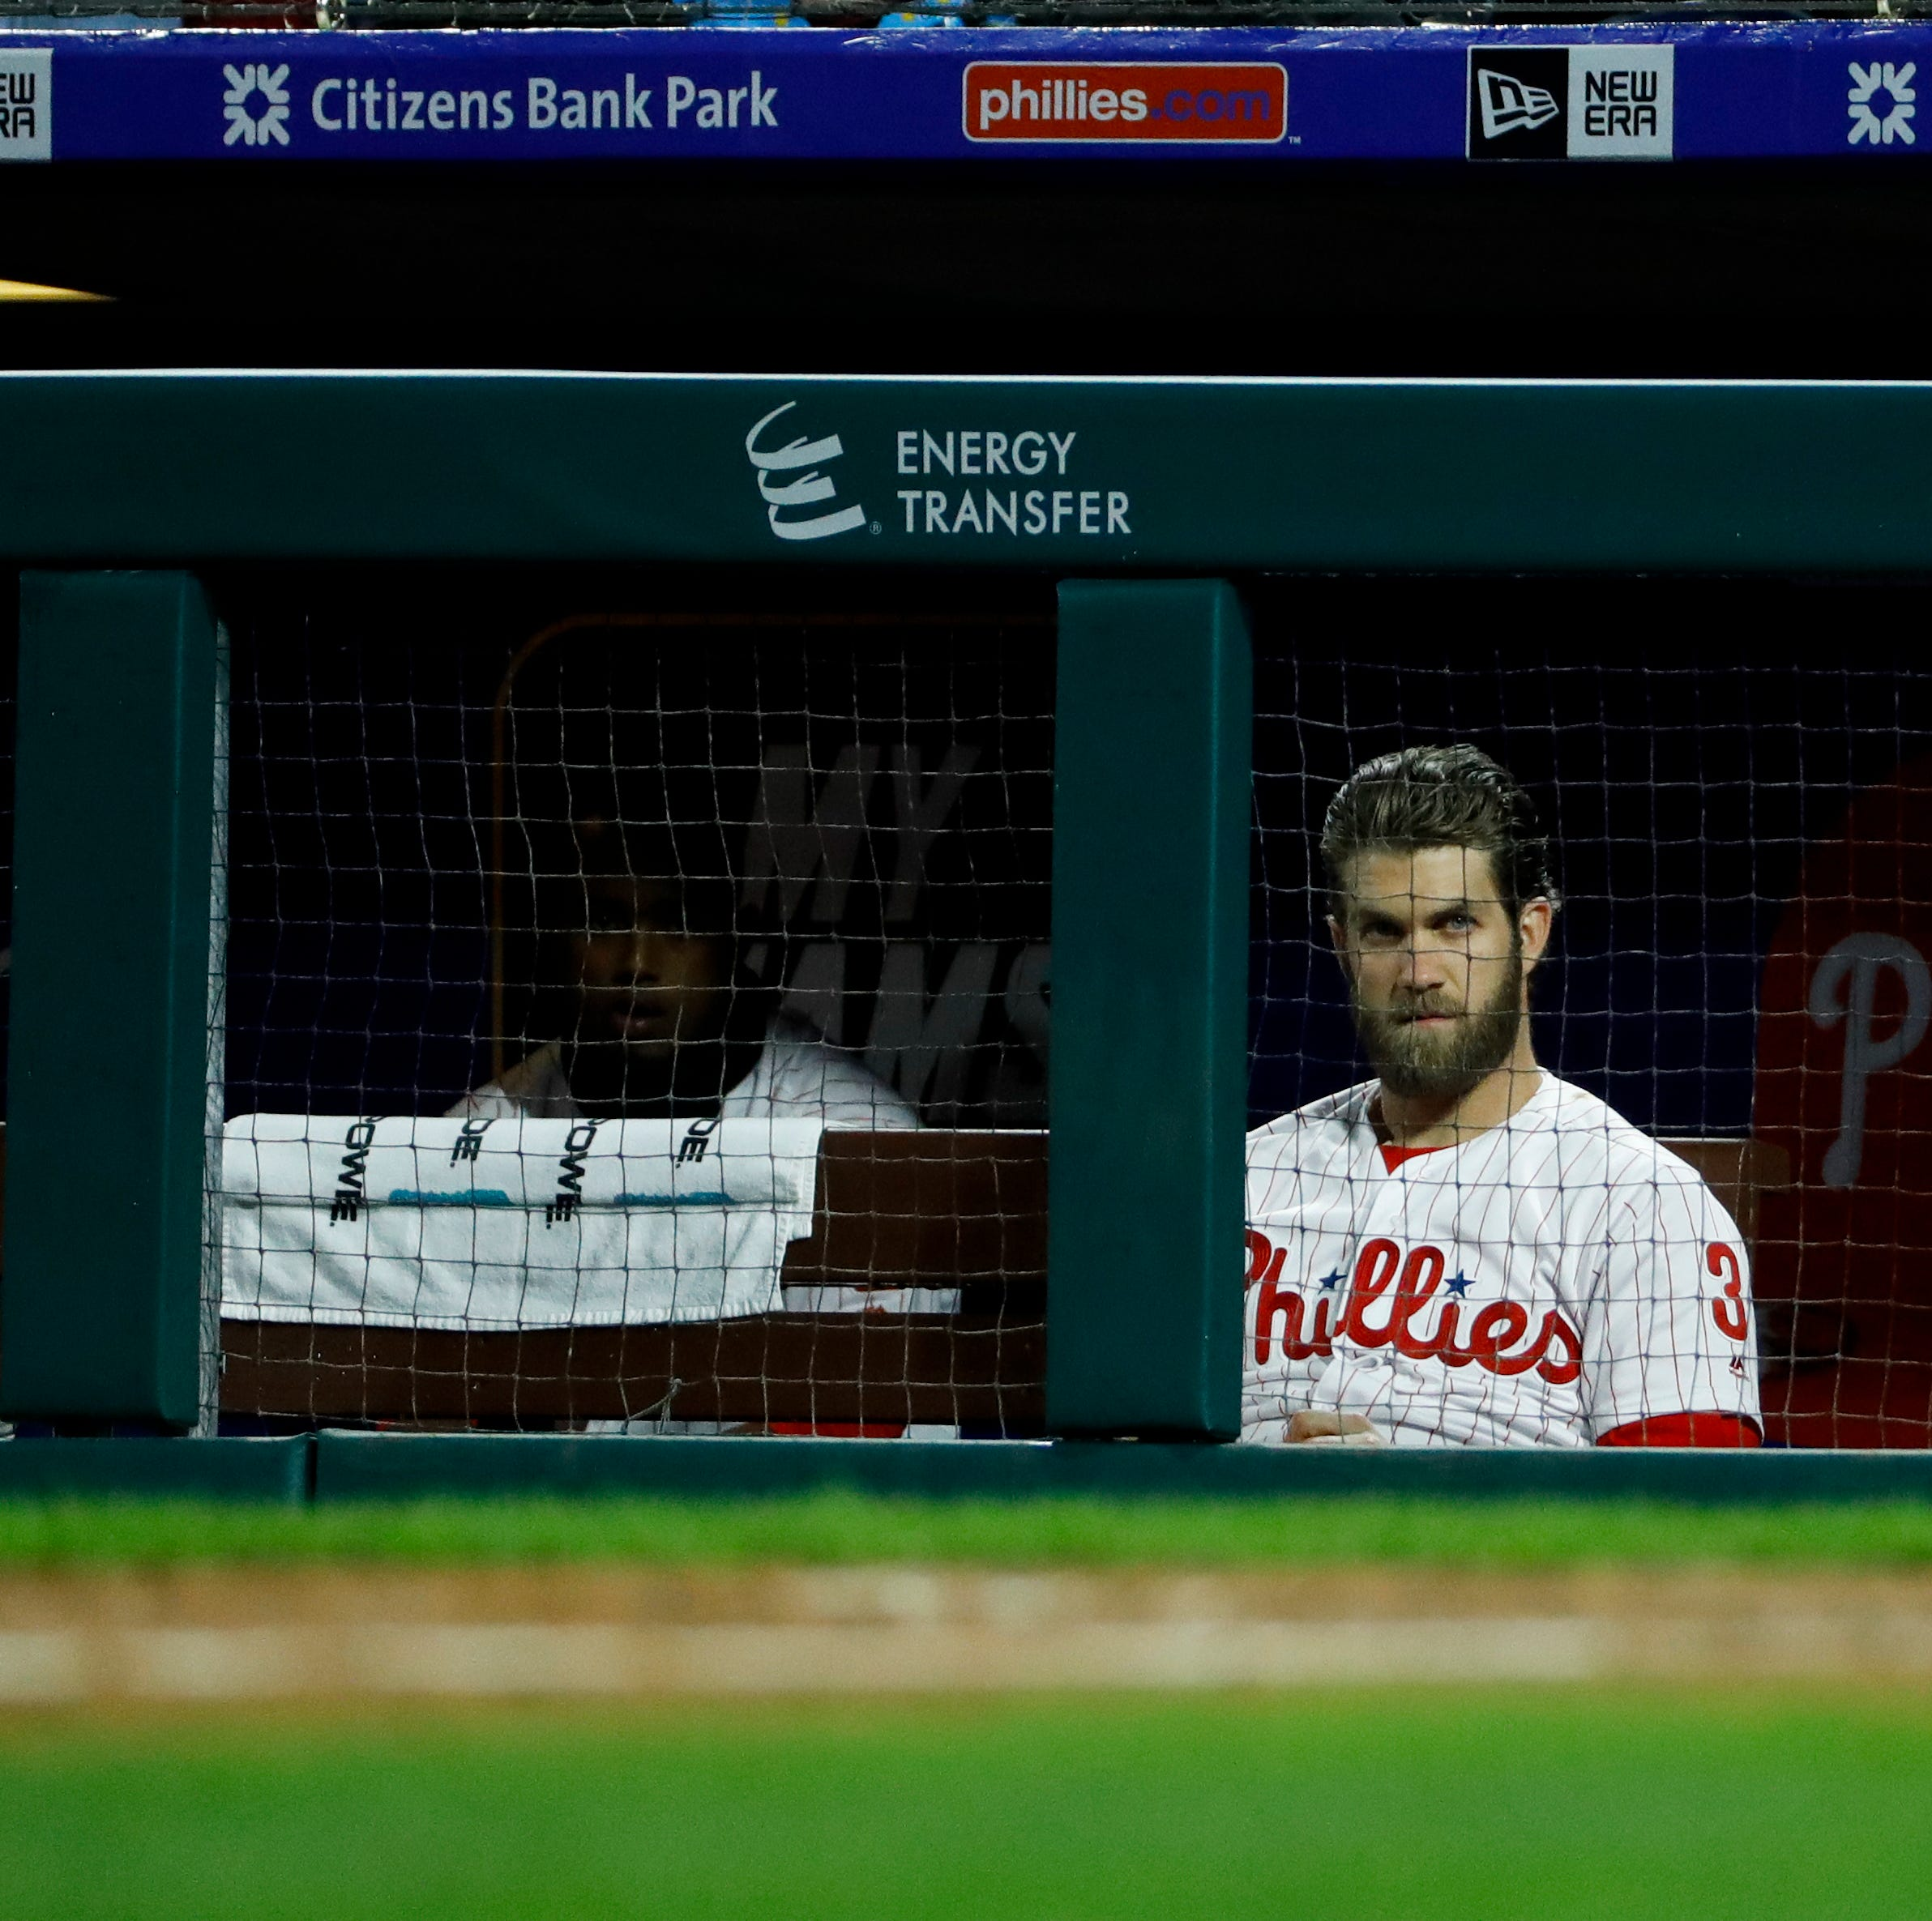 Bryce Harper's not hitting, but he's still helping the Phillies win